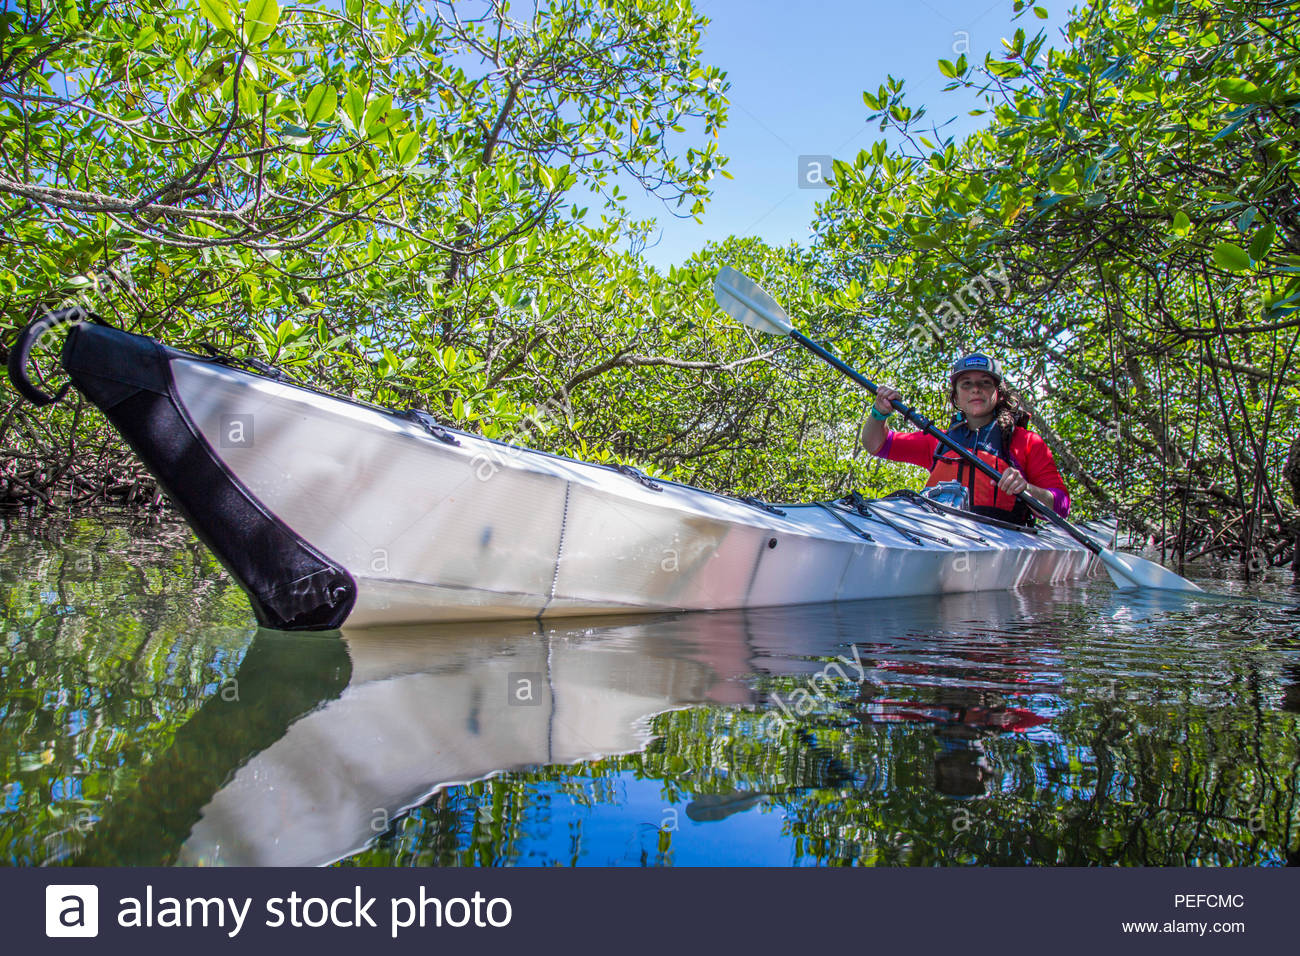 An expedition photographer paddles over sea grass and pencil coral in the lagoonal mangroves of Isla Bastimientos, Panama. Stock Photo